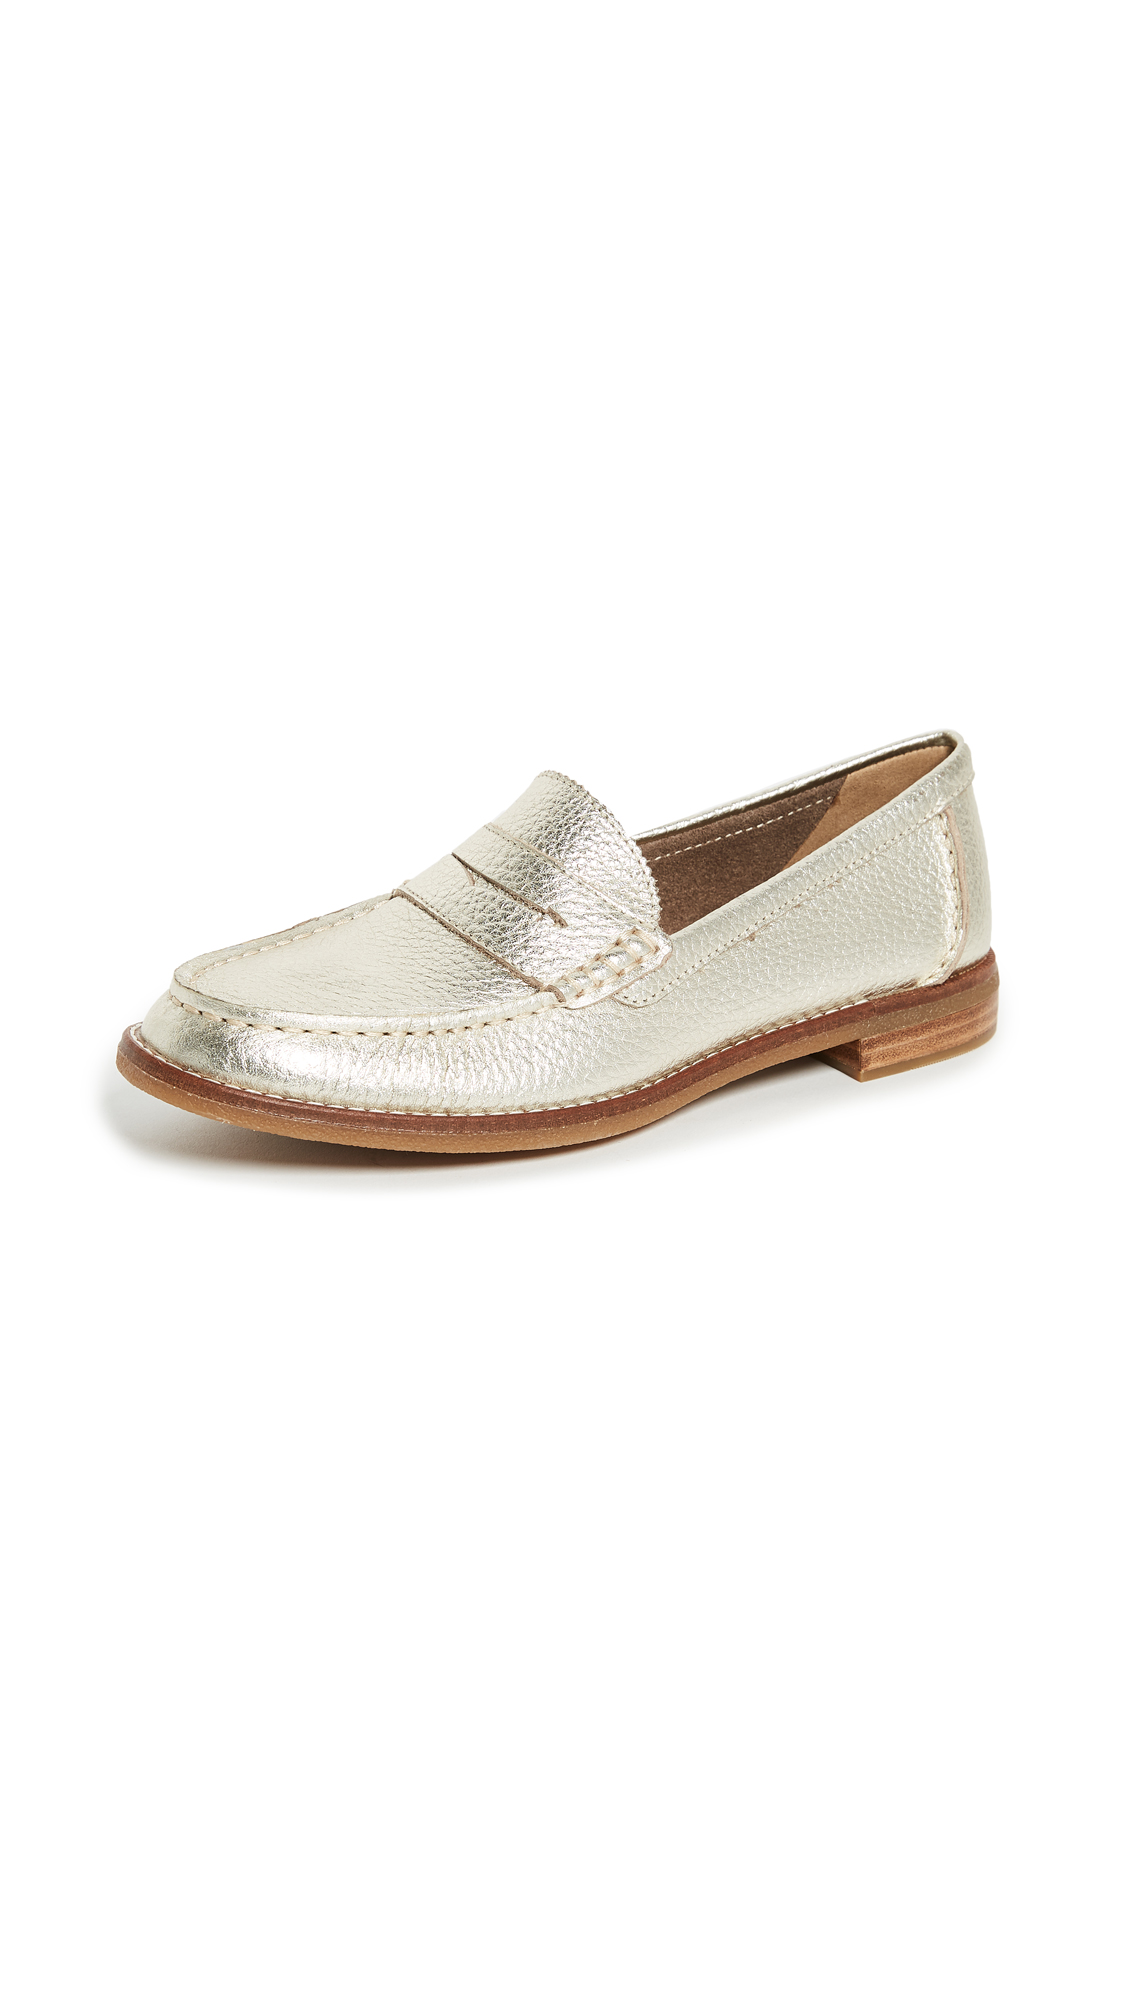 Sperry Seaport Penny Loafers - Platinum